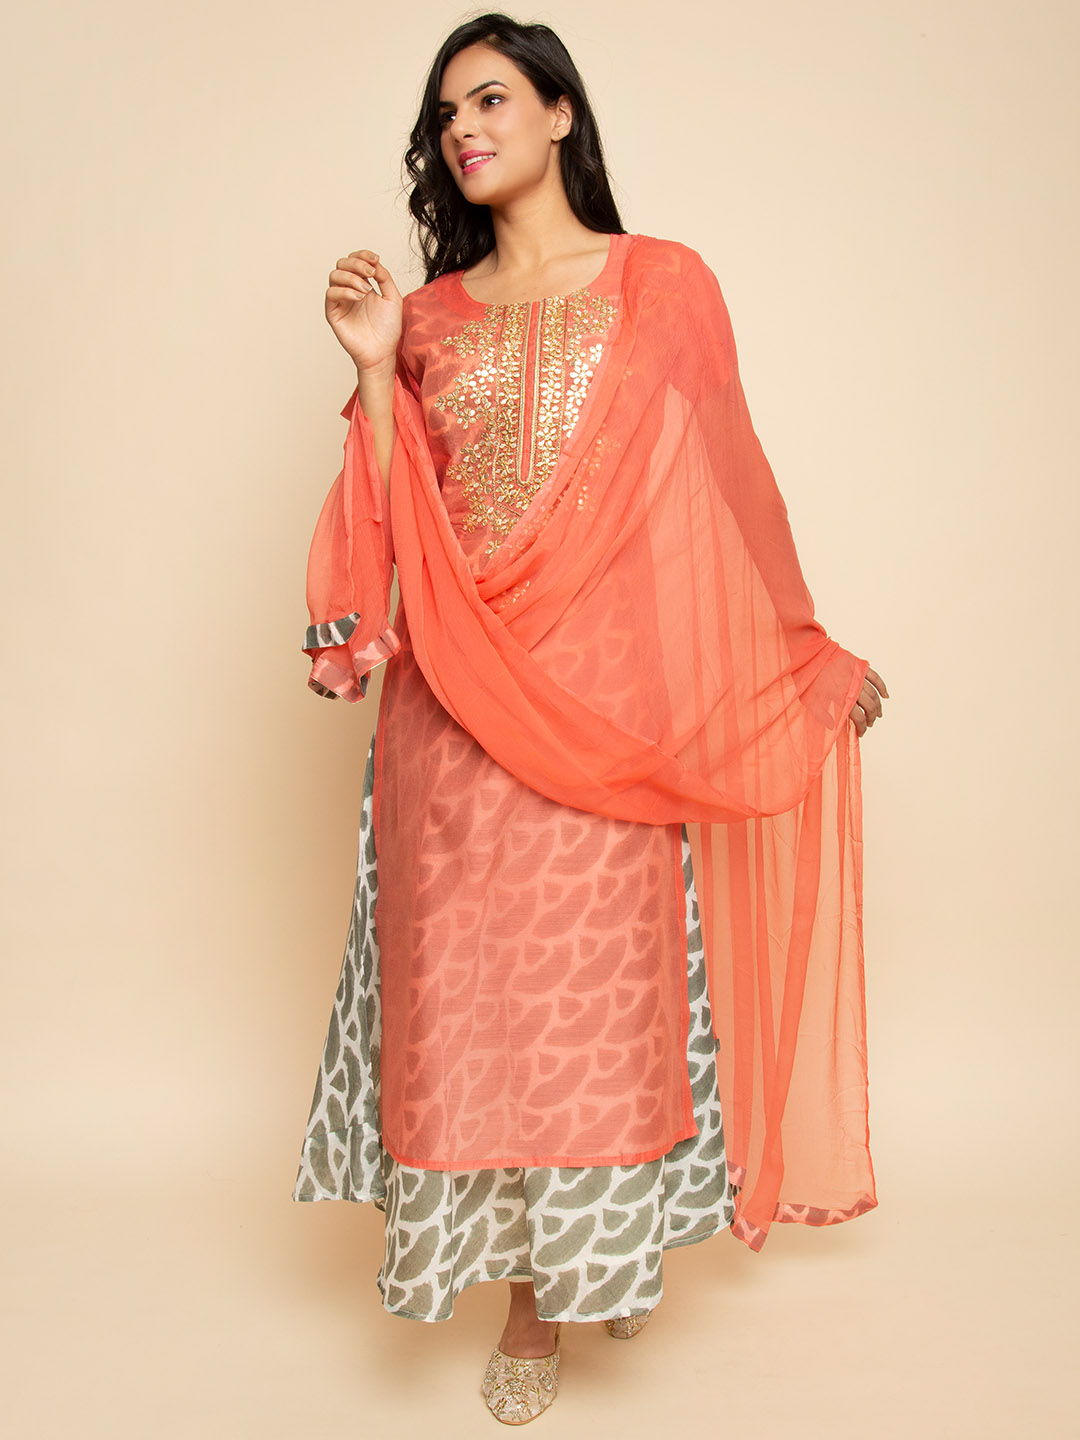 Chanderi gown with gota embroidery